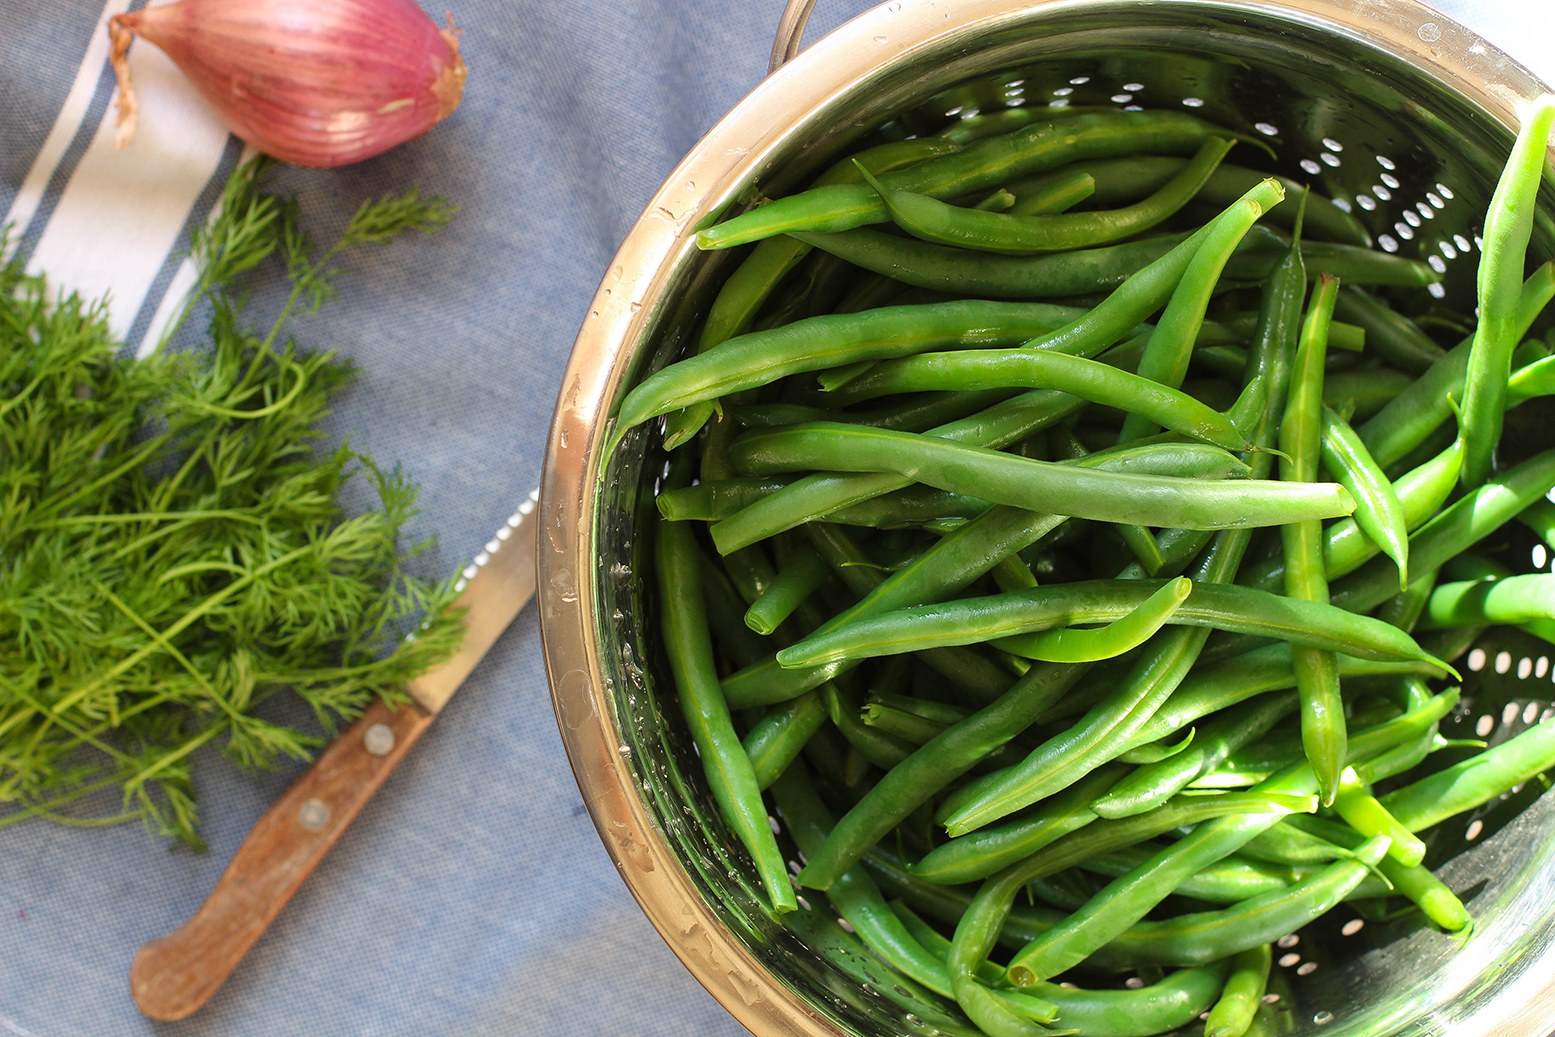 Apple Cider Green Beans with shallots & dill - an easy vegan & gluten free holiday side